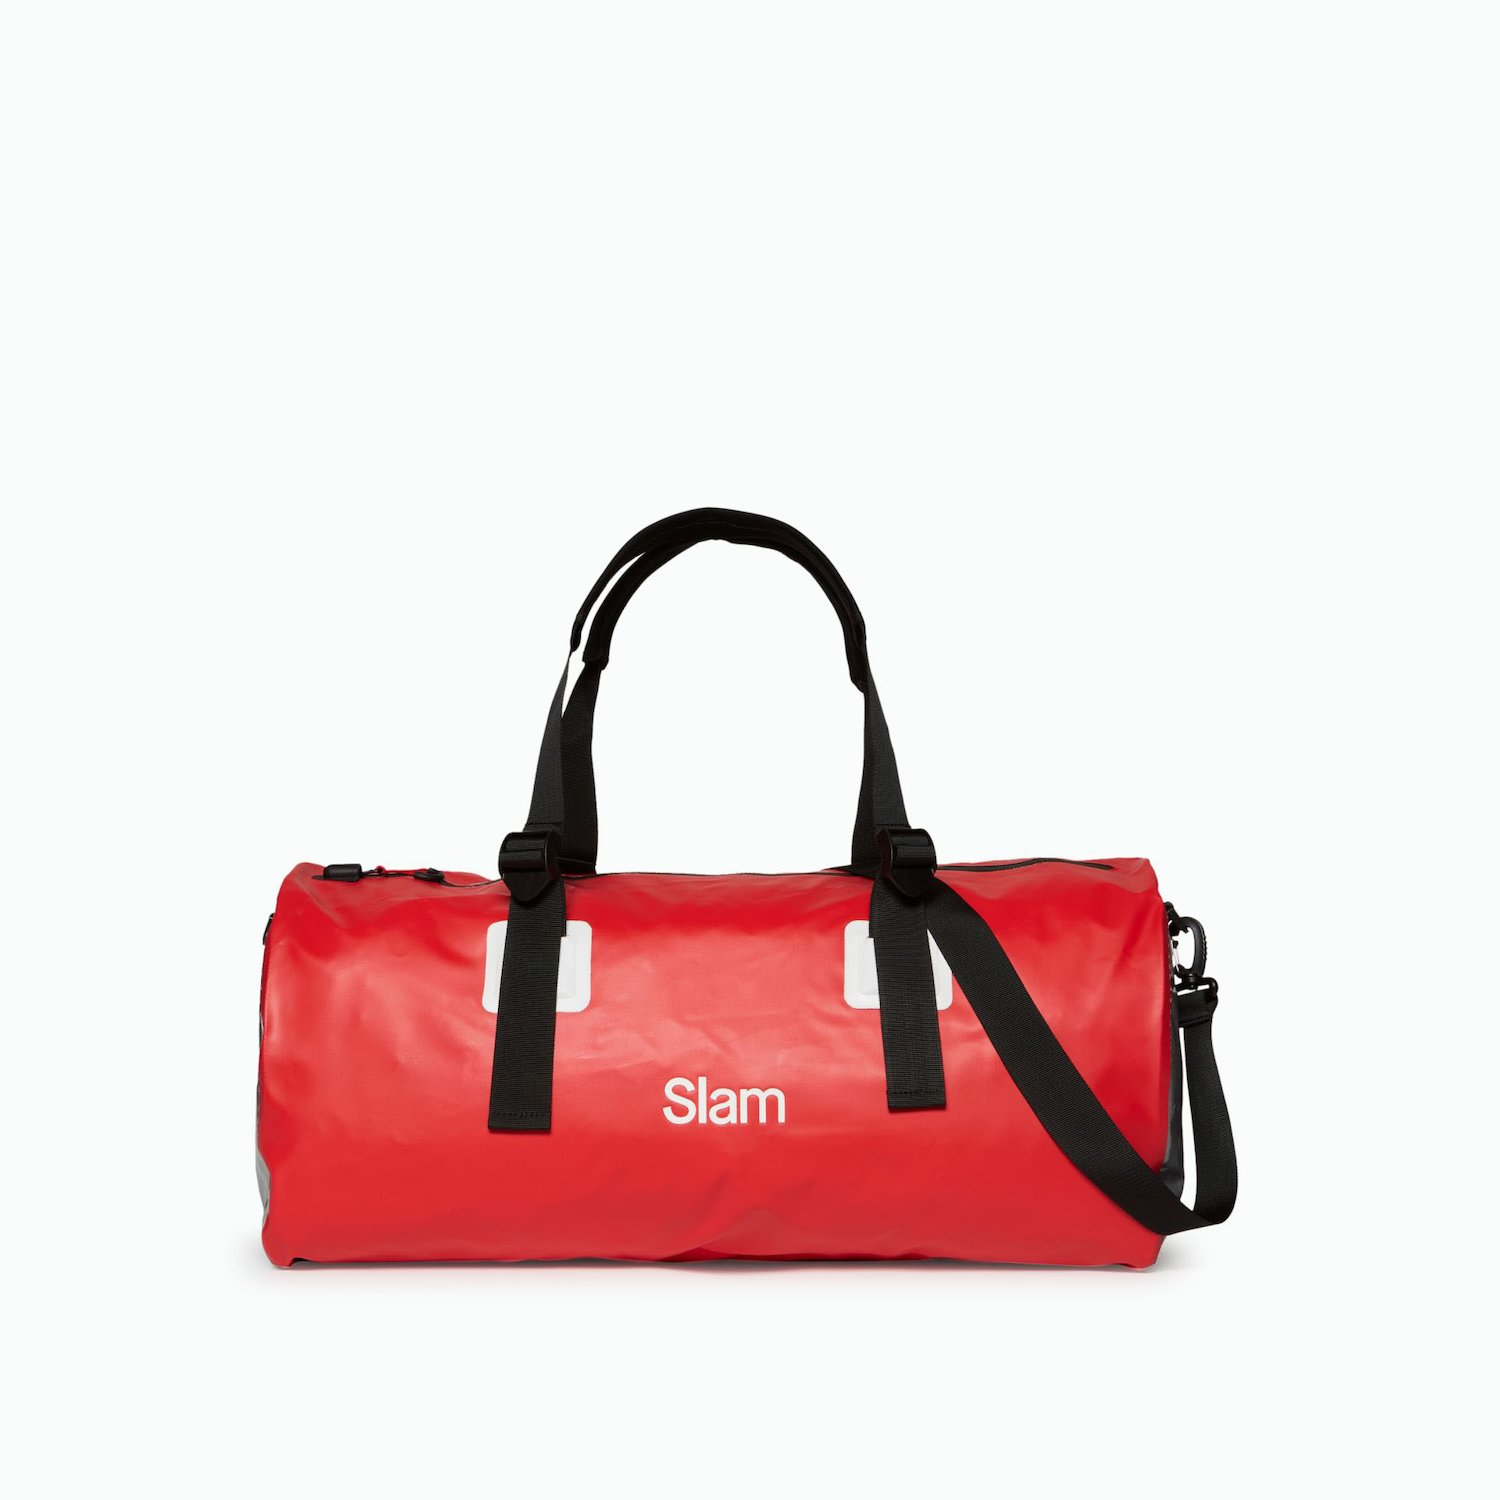 Kalamos Evolution Bag - Slam Red